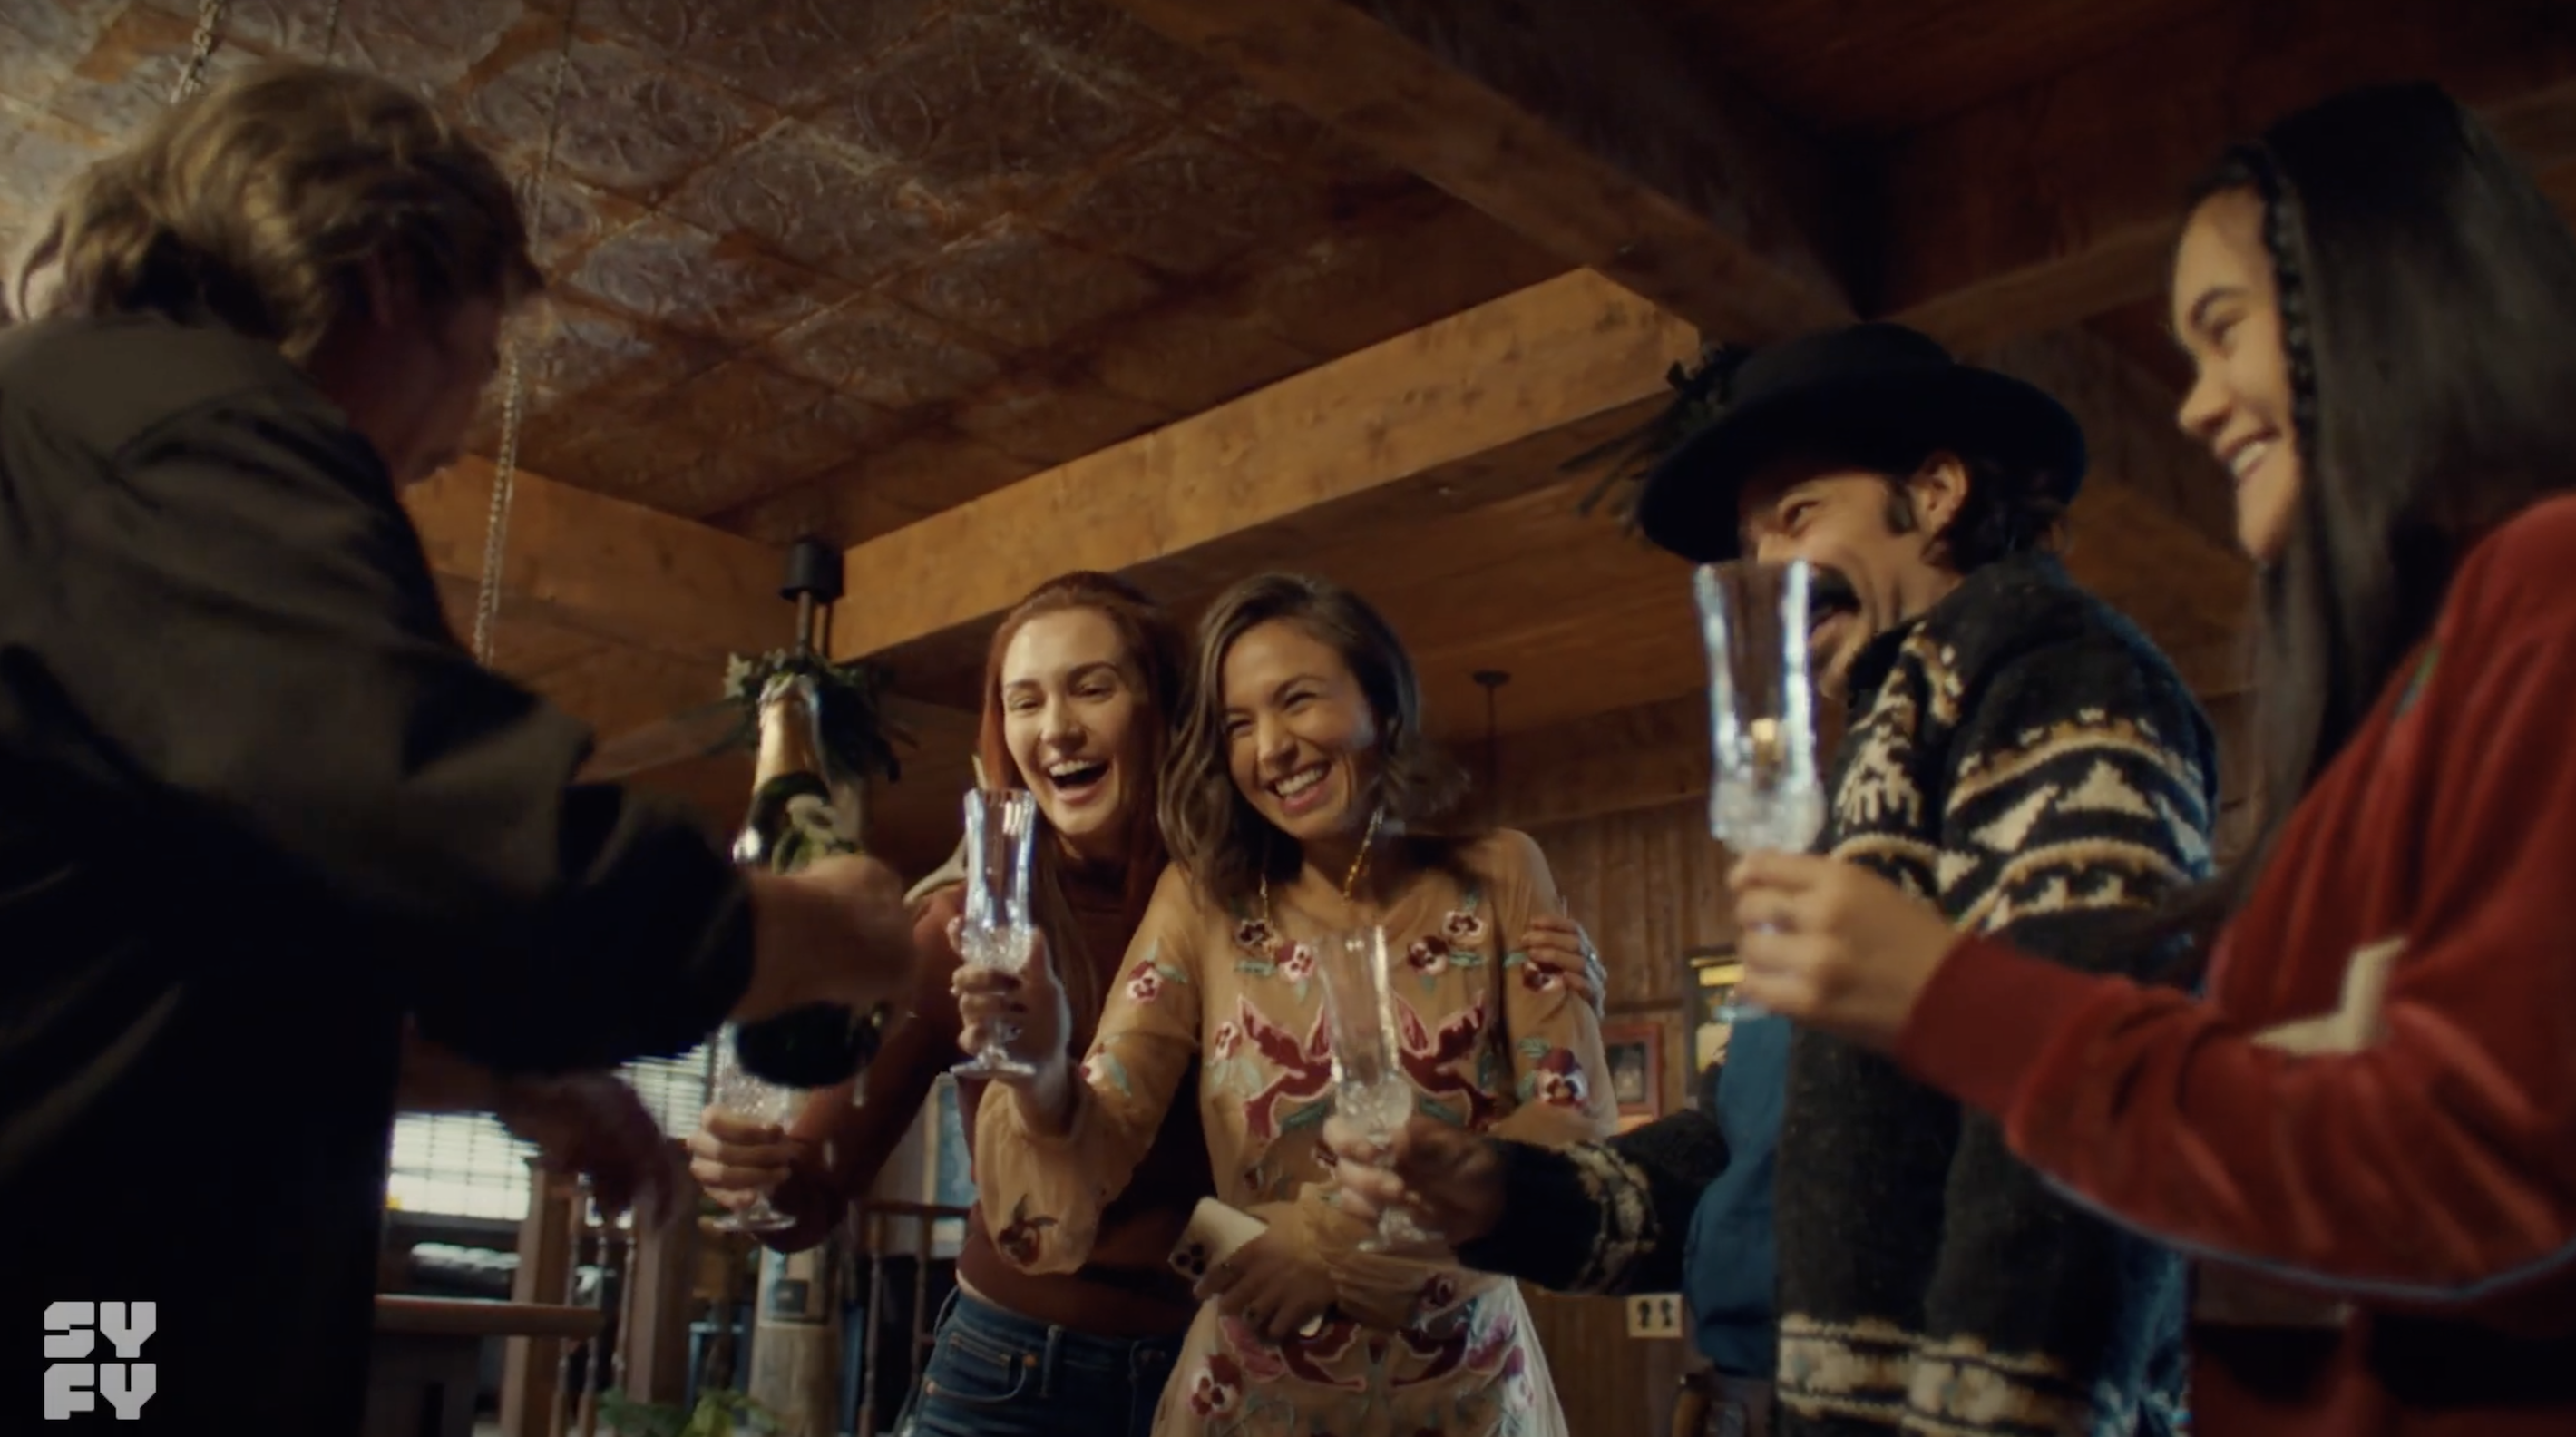 Nicole, Waverly, and others making a toast